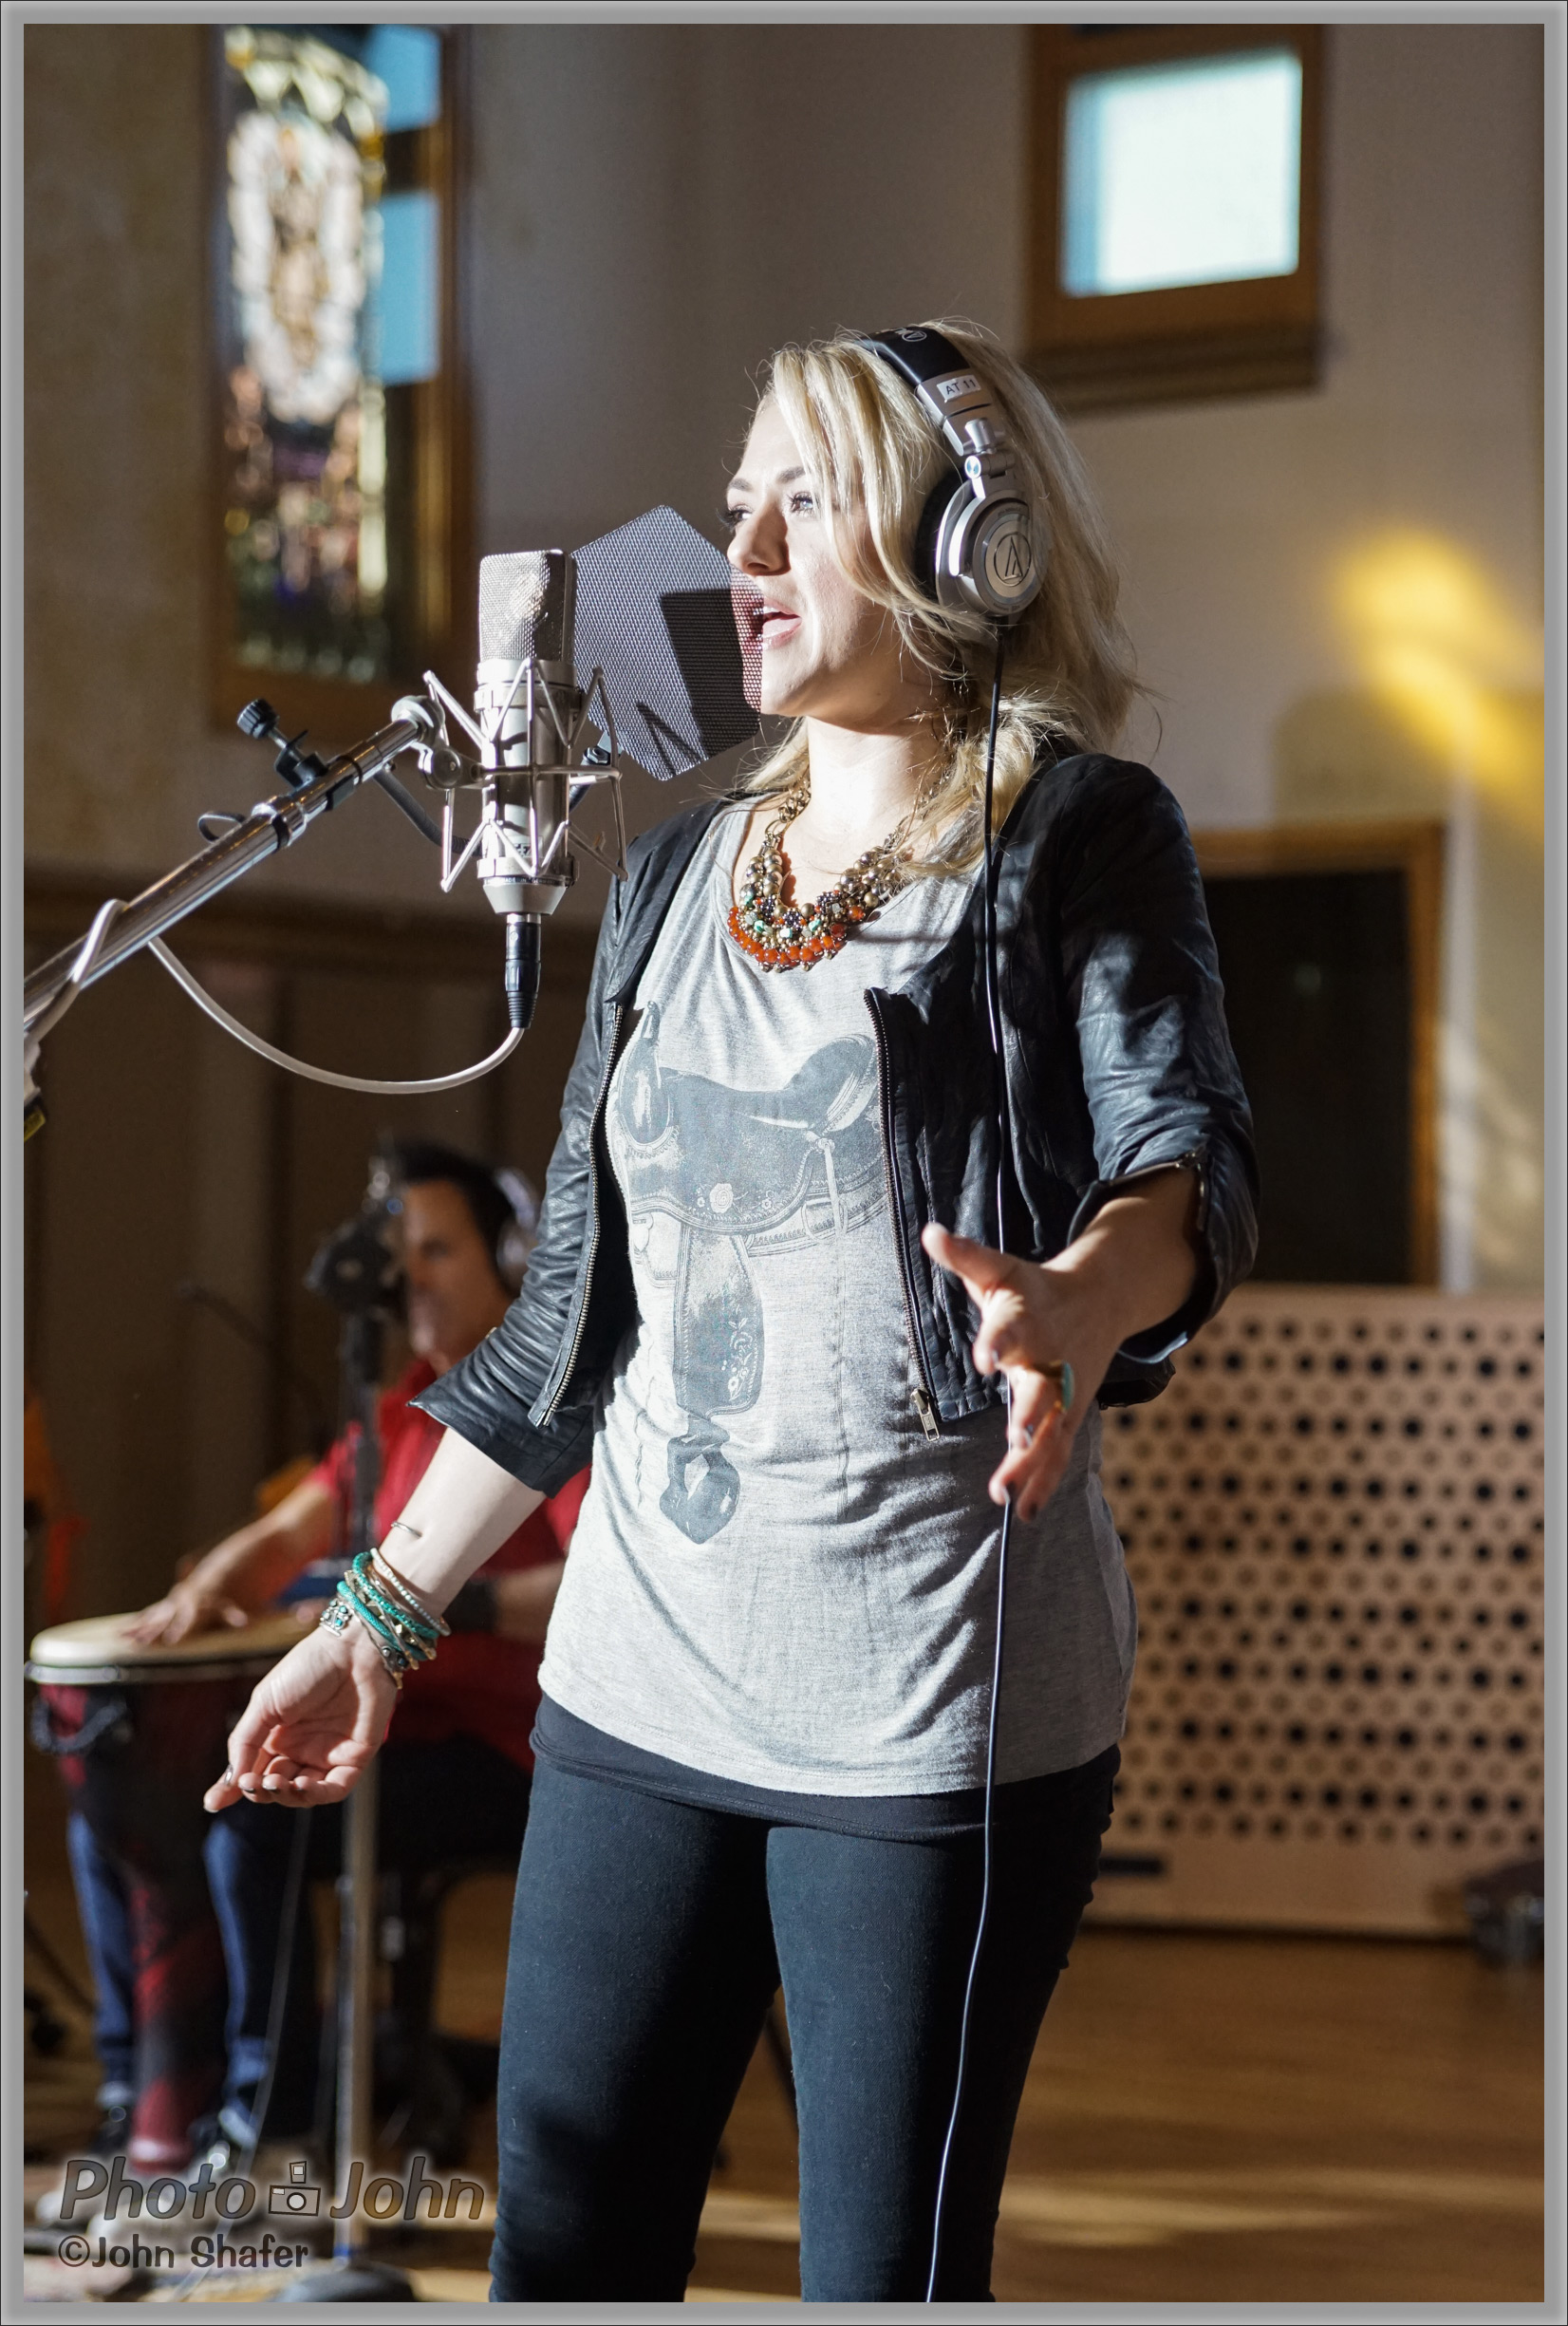 Leah Turner In the Studio - Sony Alpha A7R